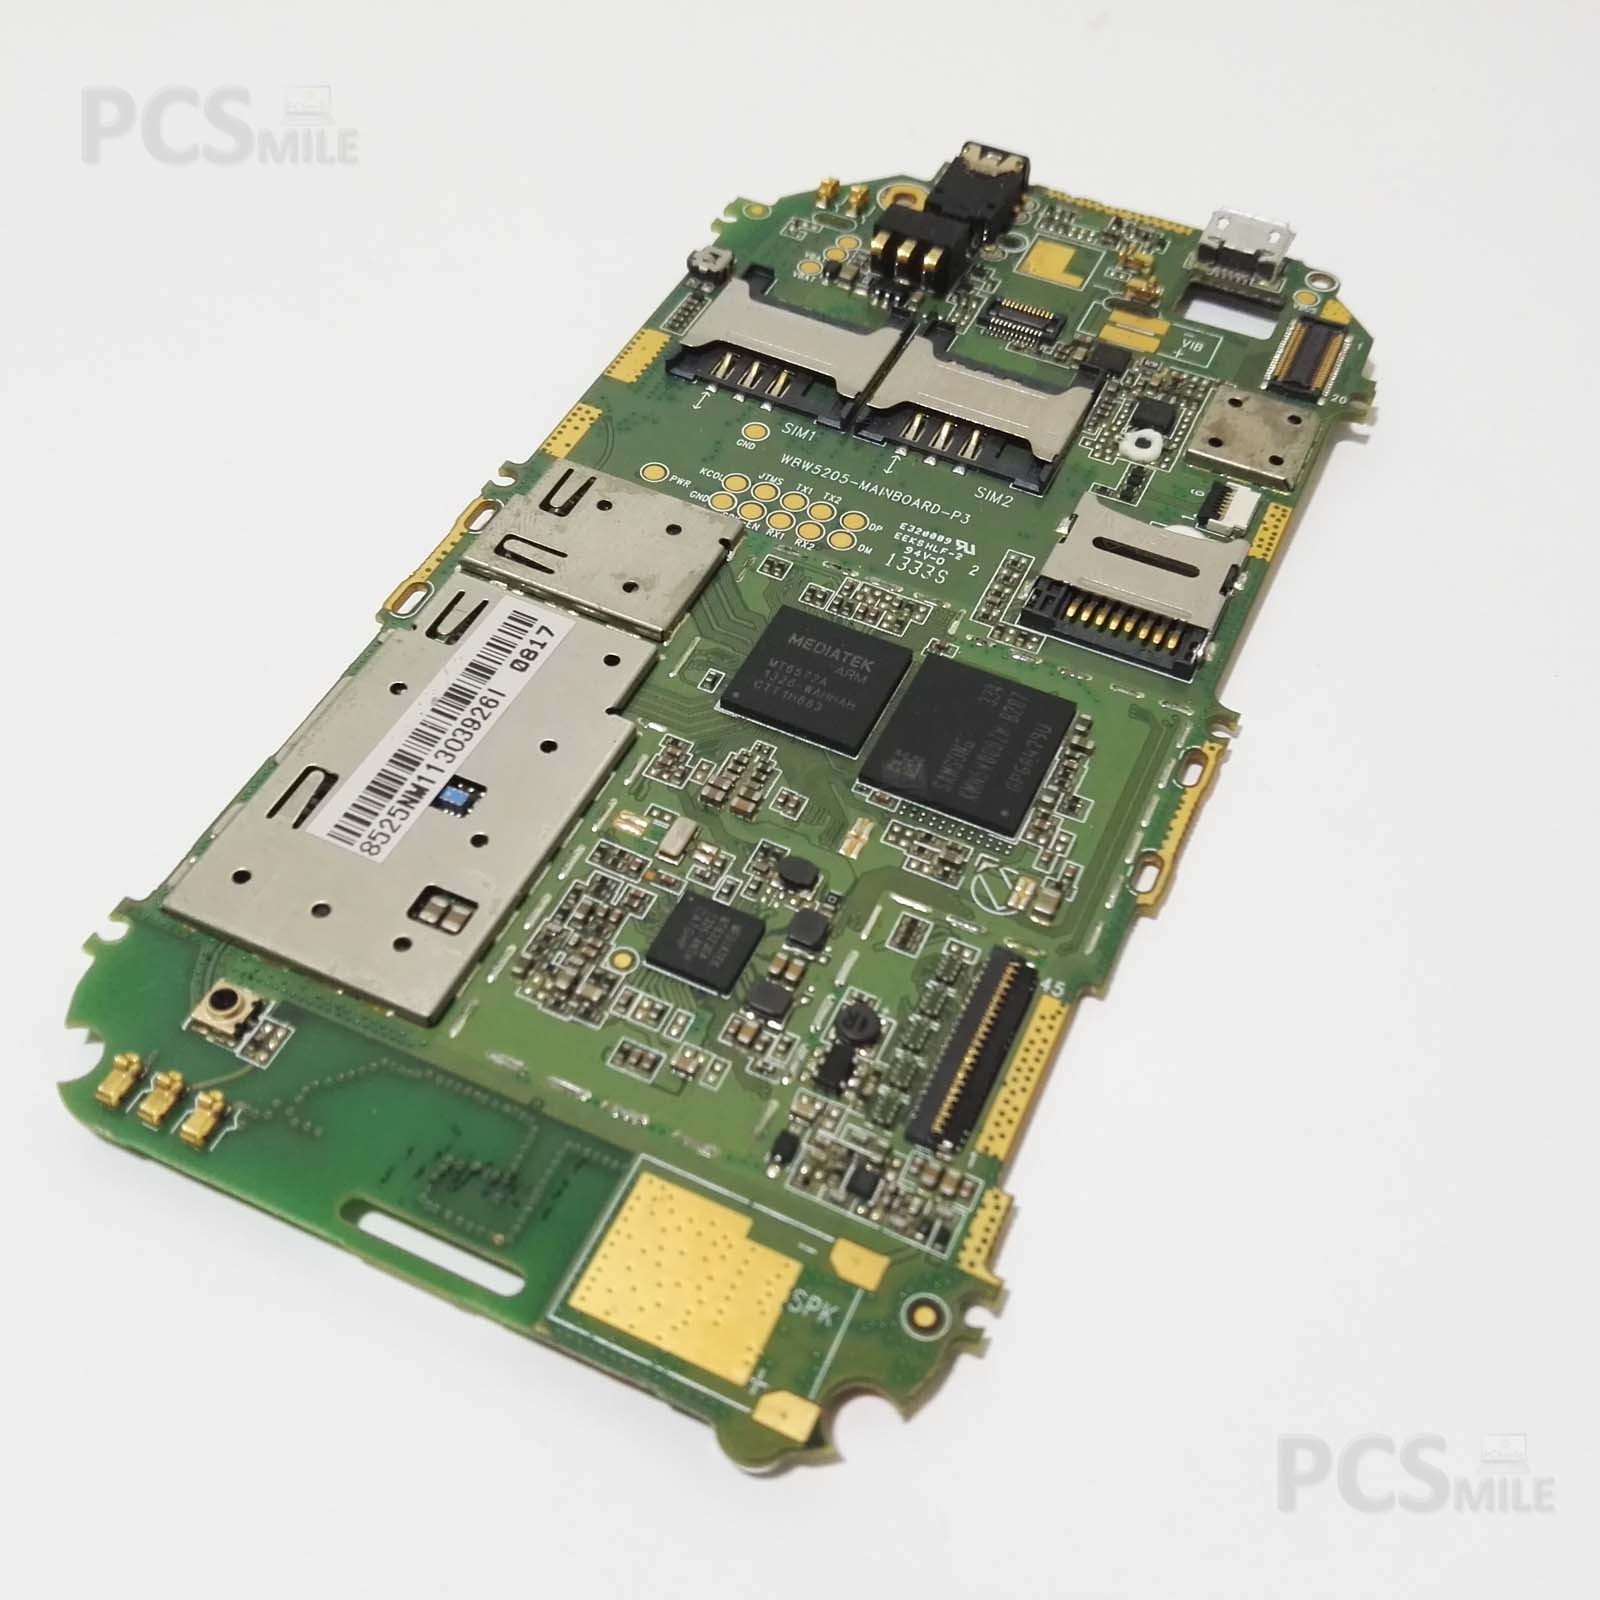 Scheda madre WBW5205-MAINBOARD-P3 NGM Dynamic Fun solo SIM2 mainboard